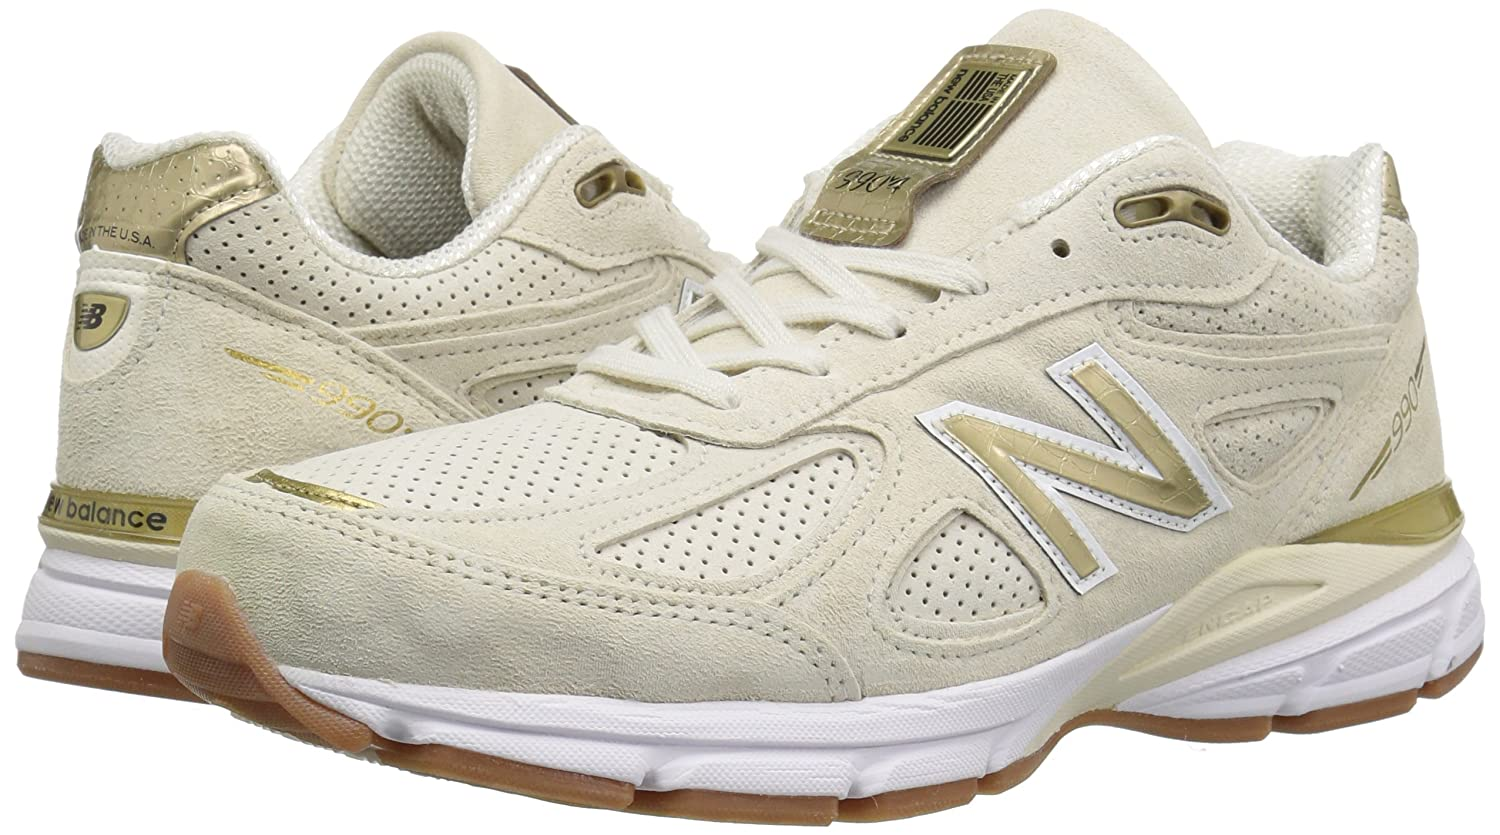 New-Balance-990-990v4-Classicc-Retro-Fashion-Sneaker-Made-in-USA thumbnail 8